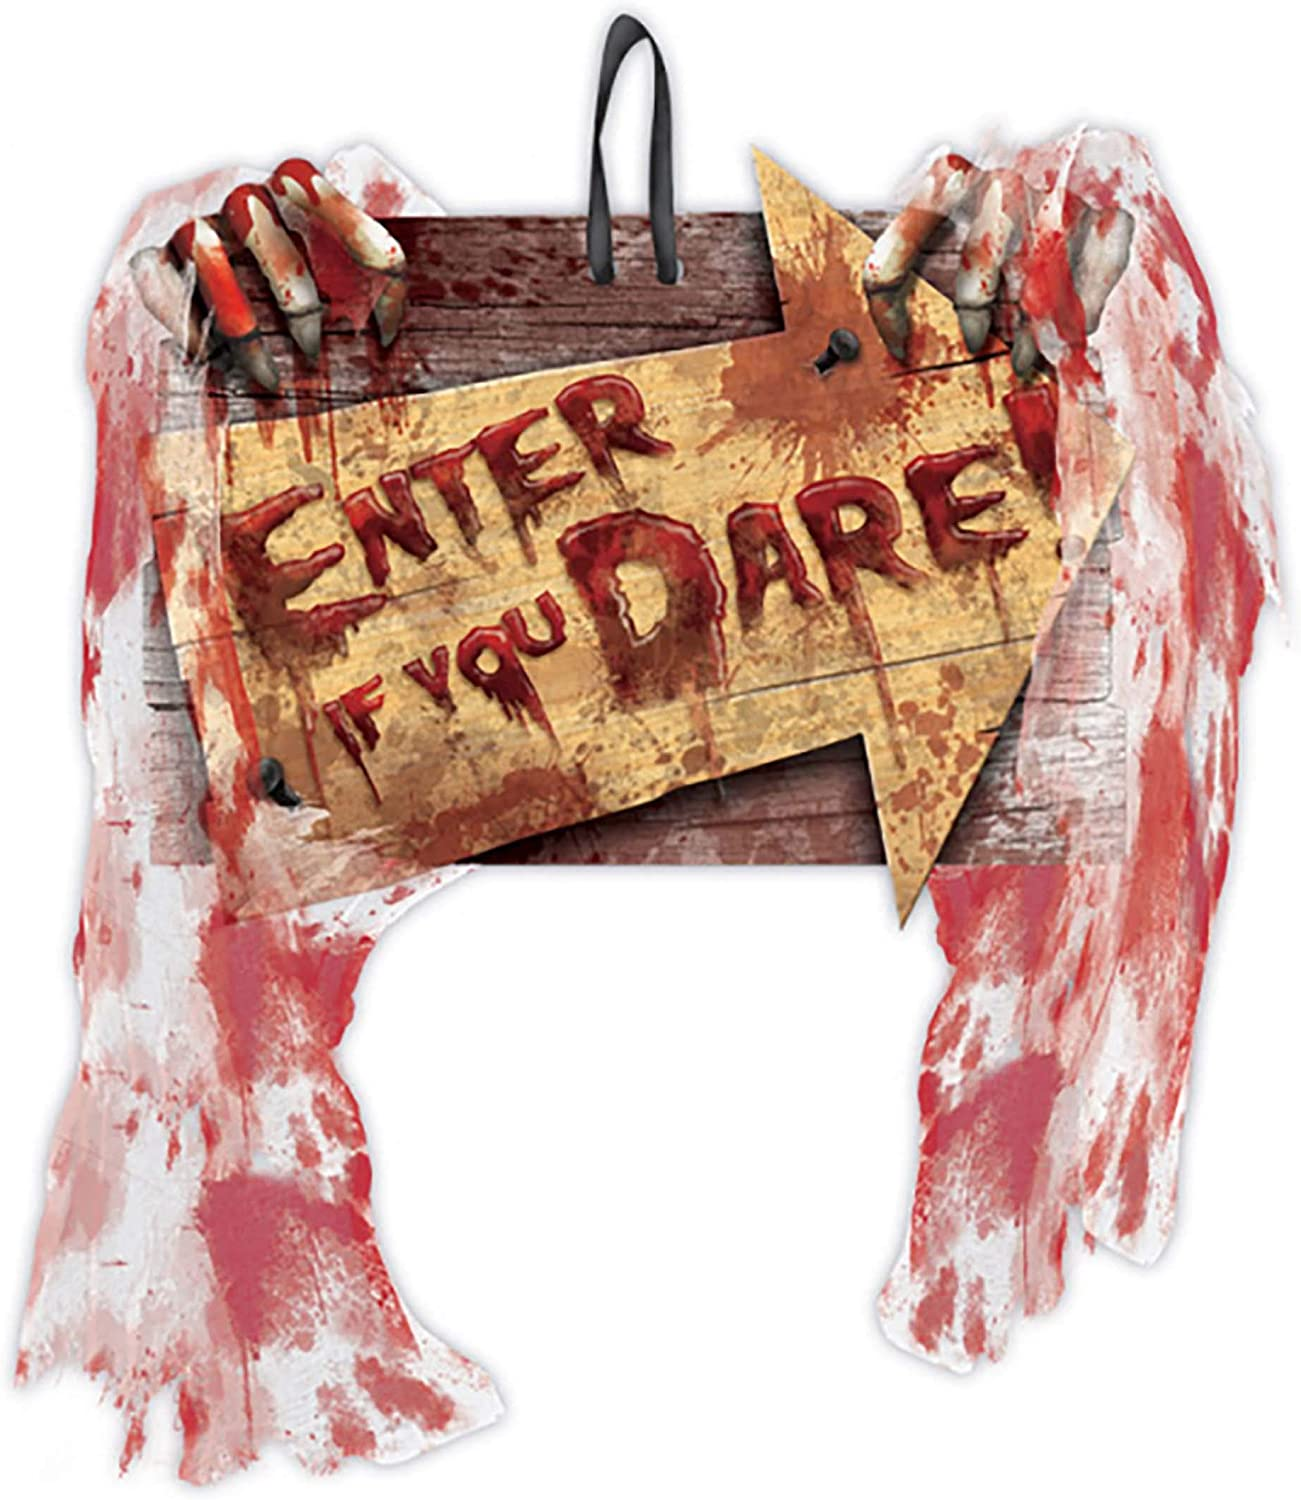 amscan | Halloween Trick or Treat Party Decoration | Enter If You Dare Creepy Carnival Sign | measures 9